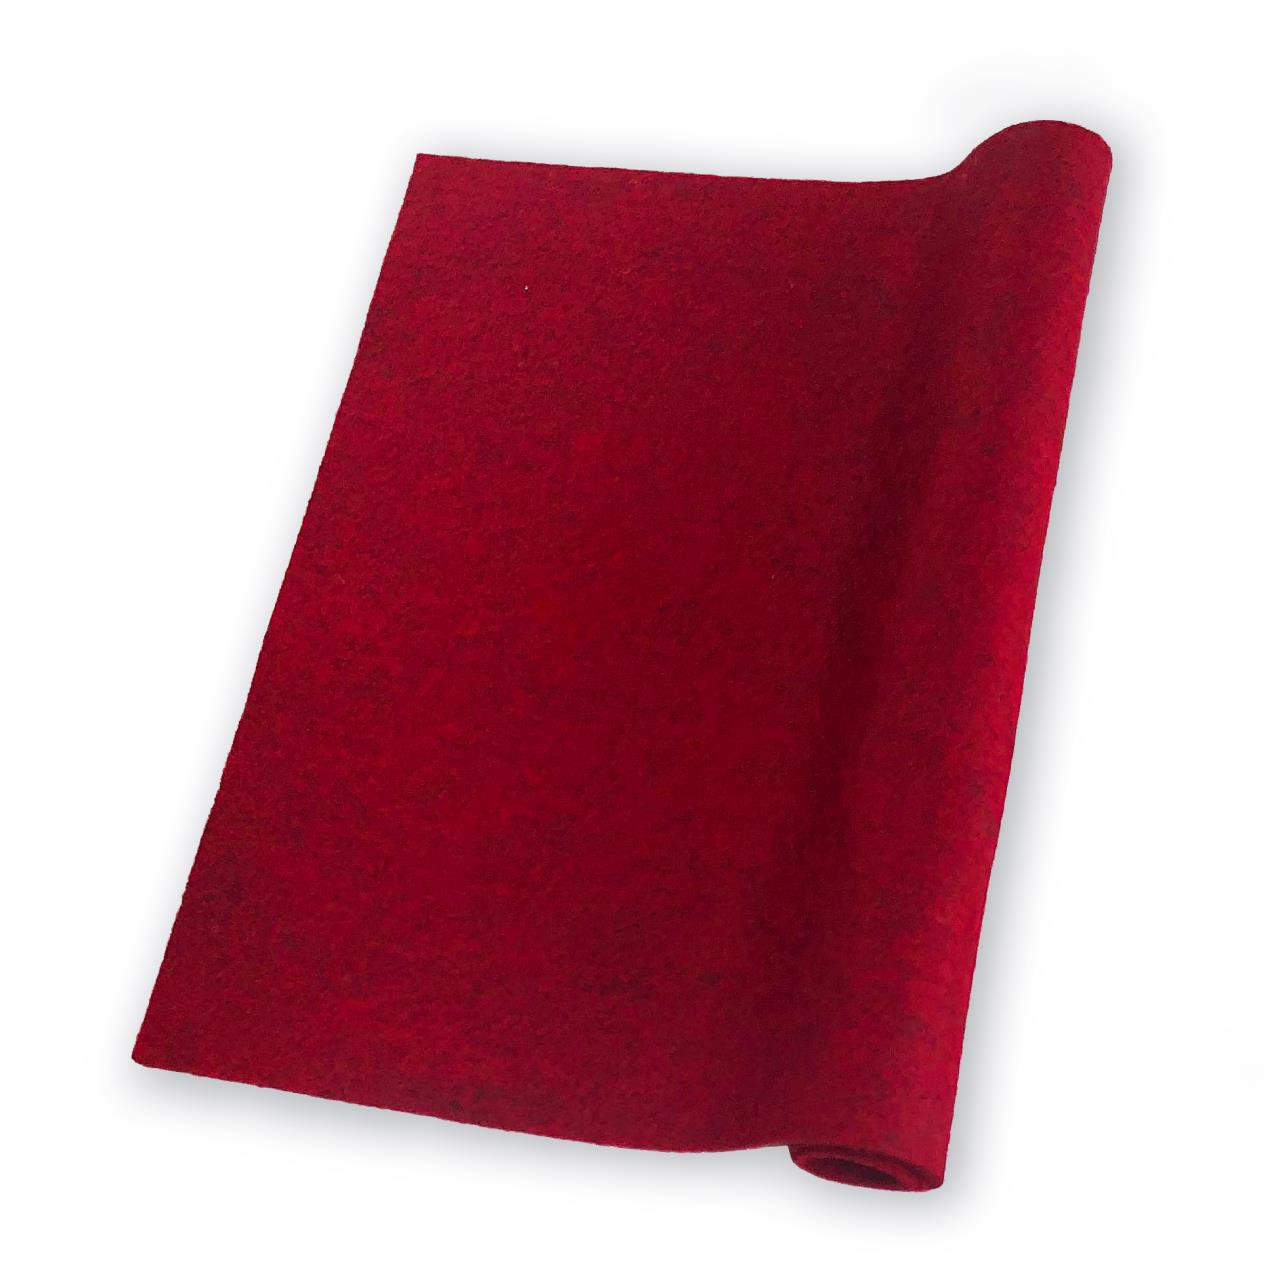 Barnyard Red, Essentials By Ellen Wool Felt 9 X 12 - 5 Pk -